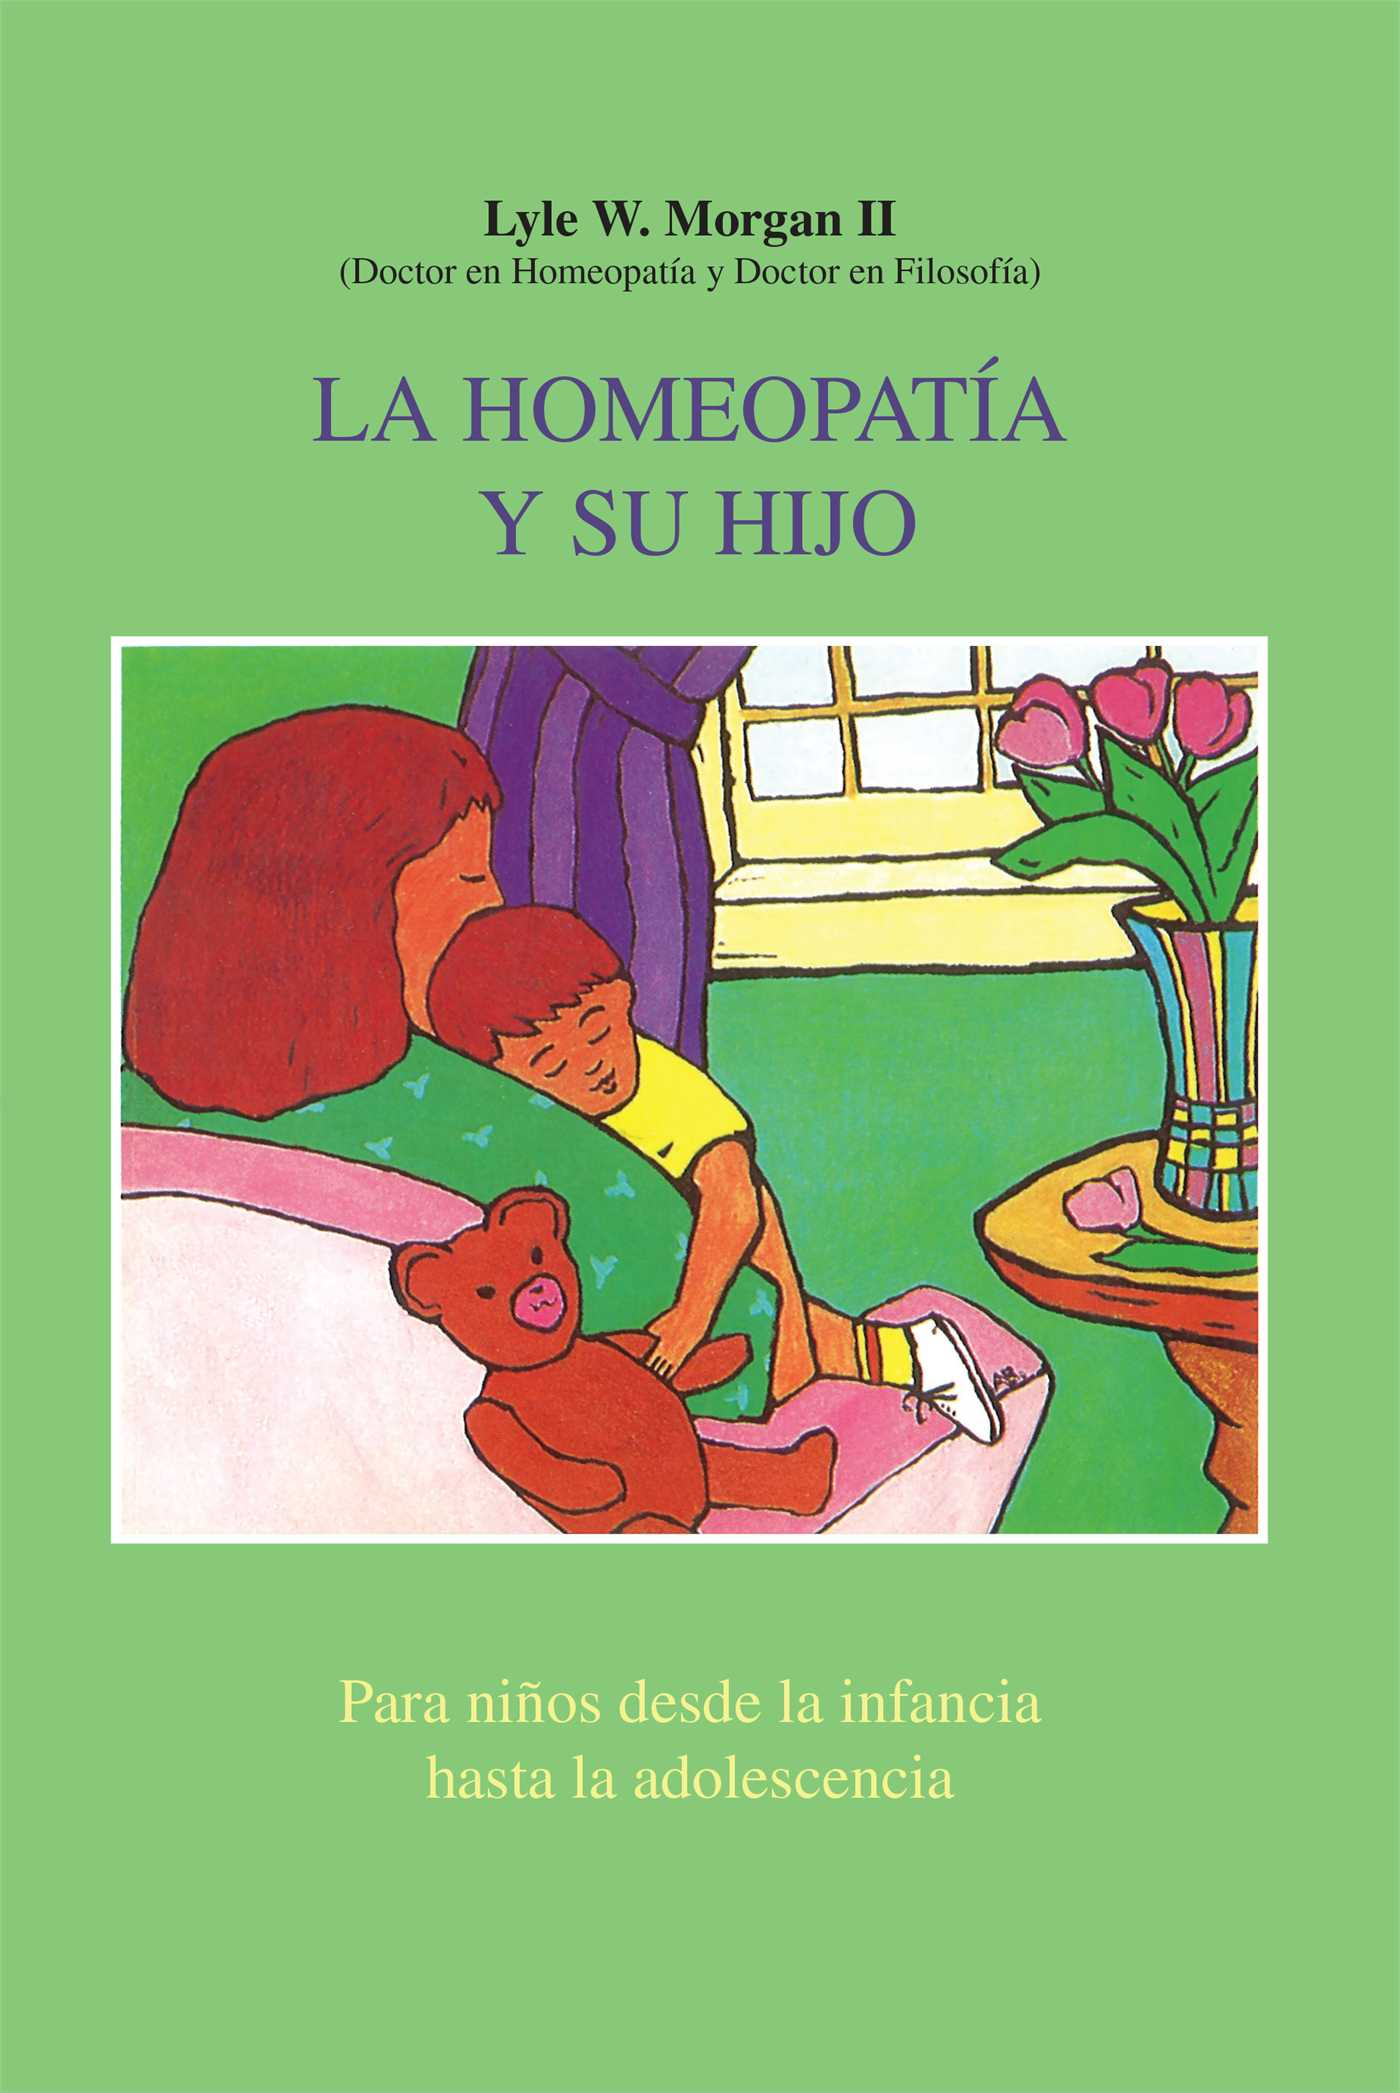 La homeopatia y su hijo 9780892814688 hr